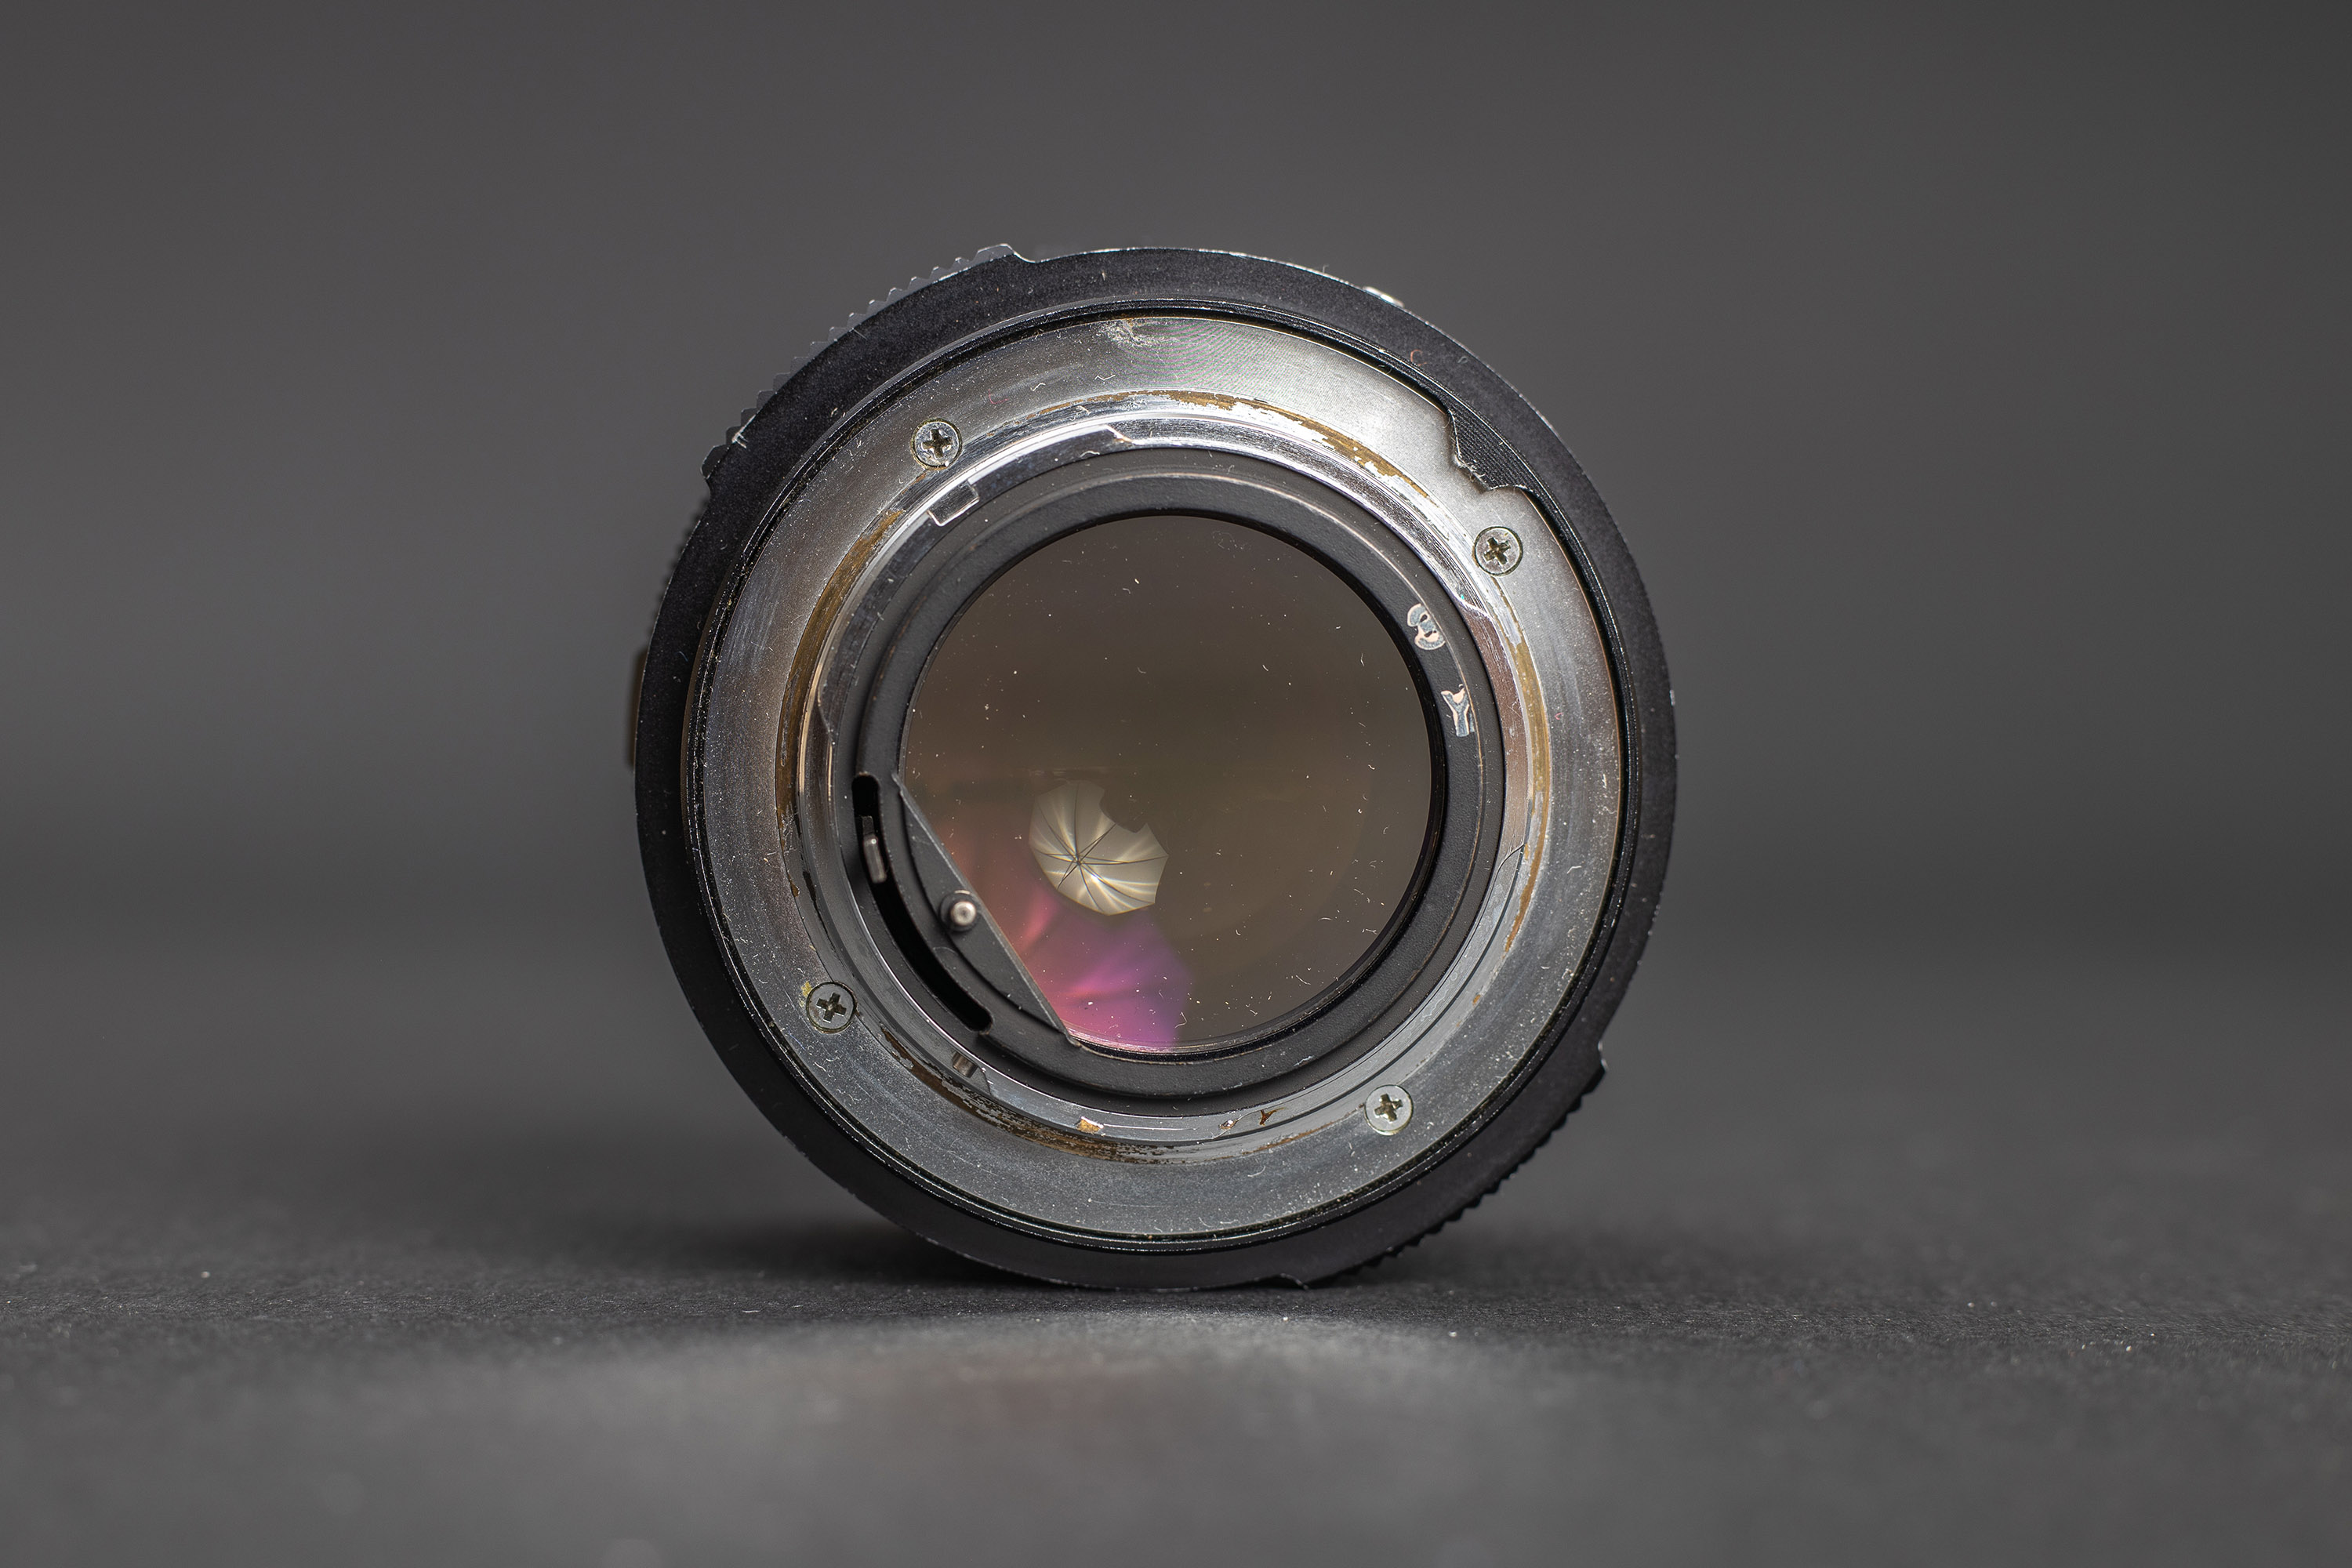 Konica Hexanon AR 57mm f1.2 - Back view showing the cut off element